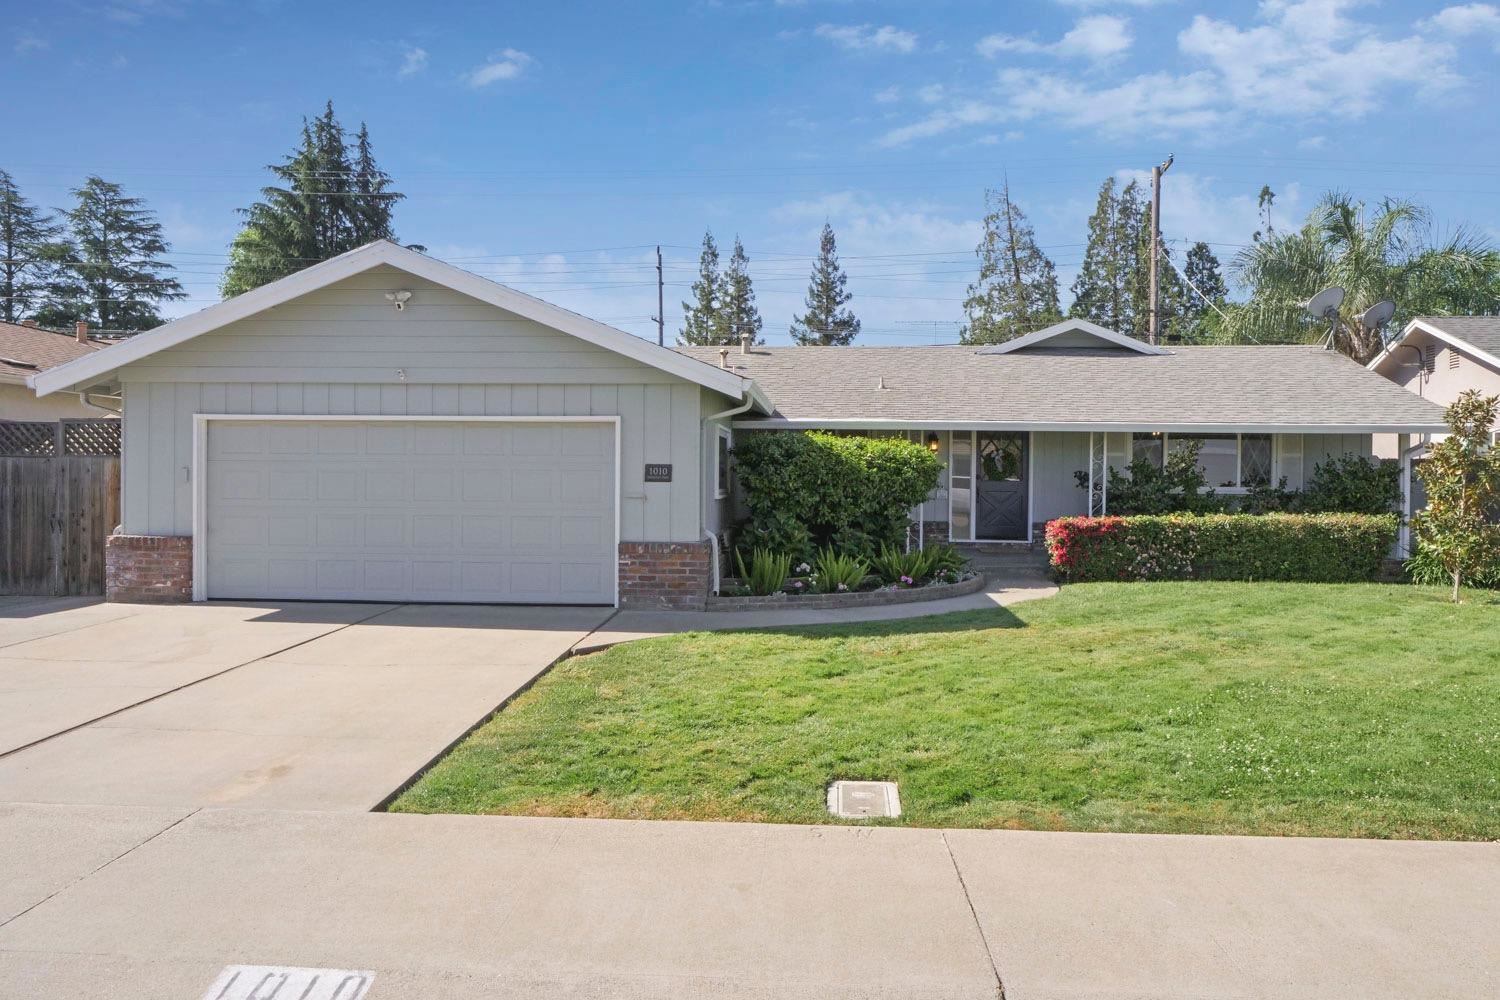 Photo of 1010 Kirkwood Drive, Lodi, CA 95242 (MLS # 221046045)